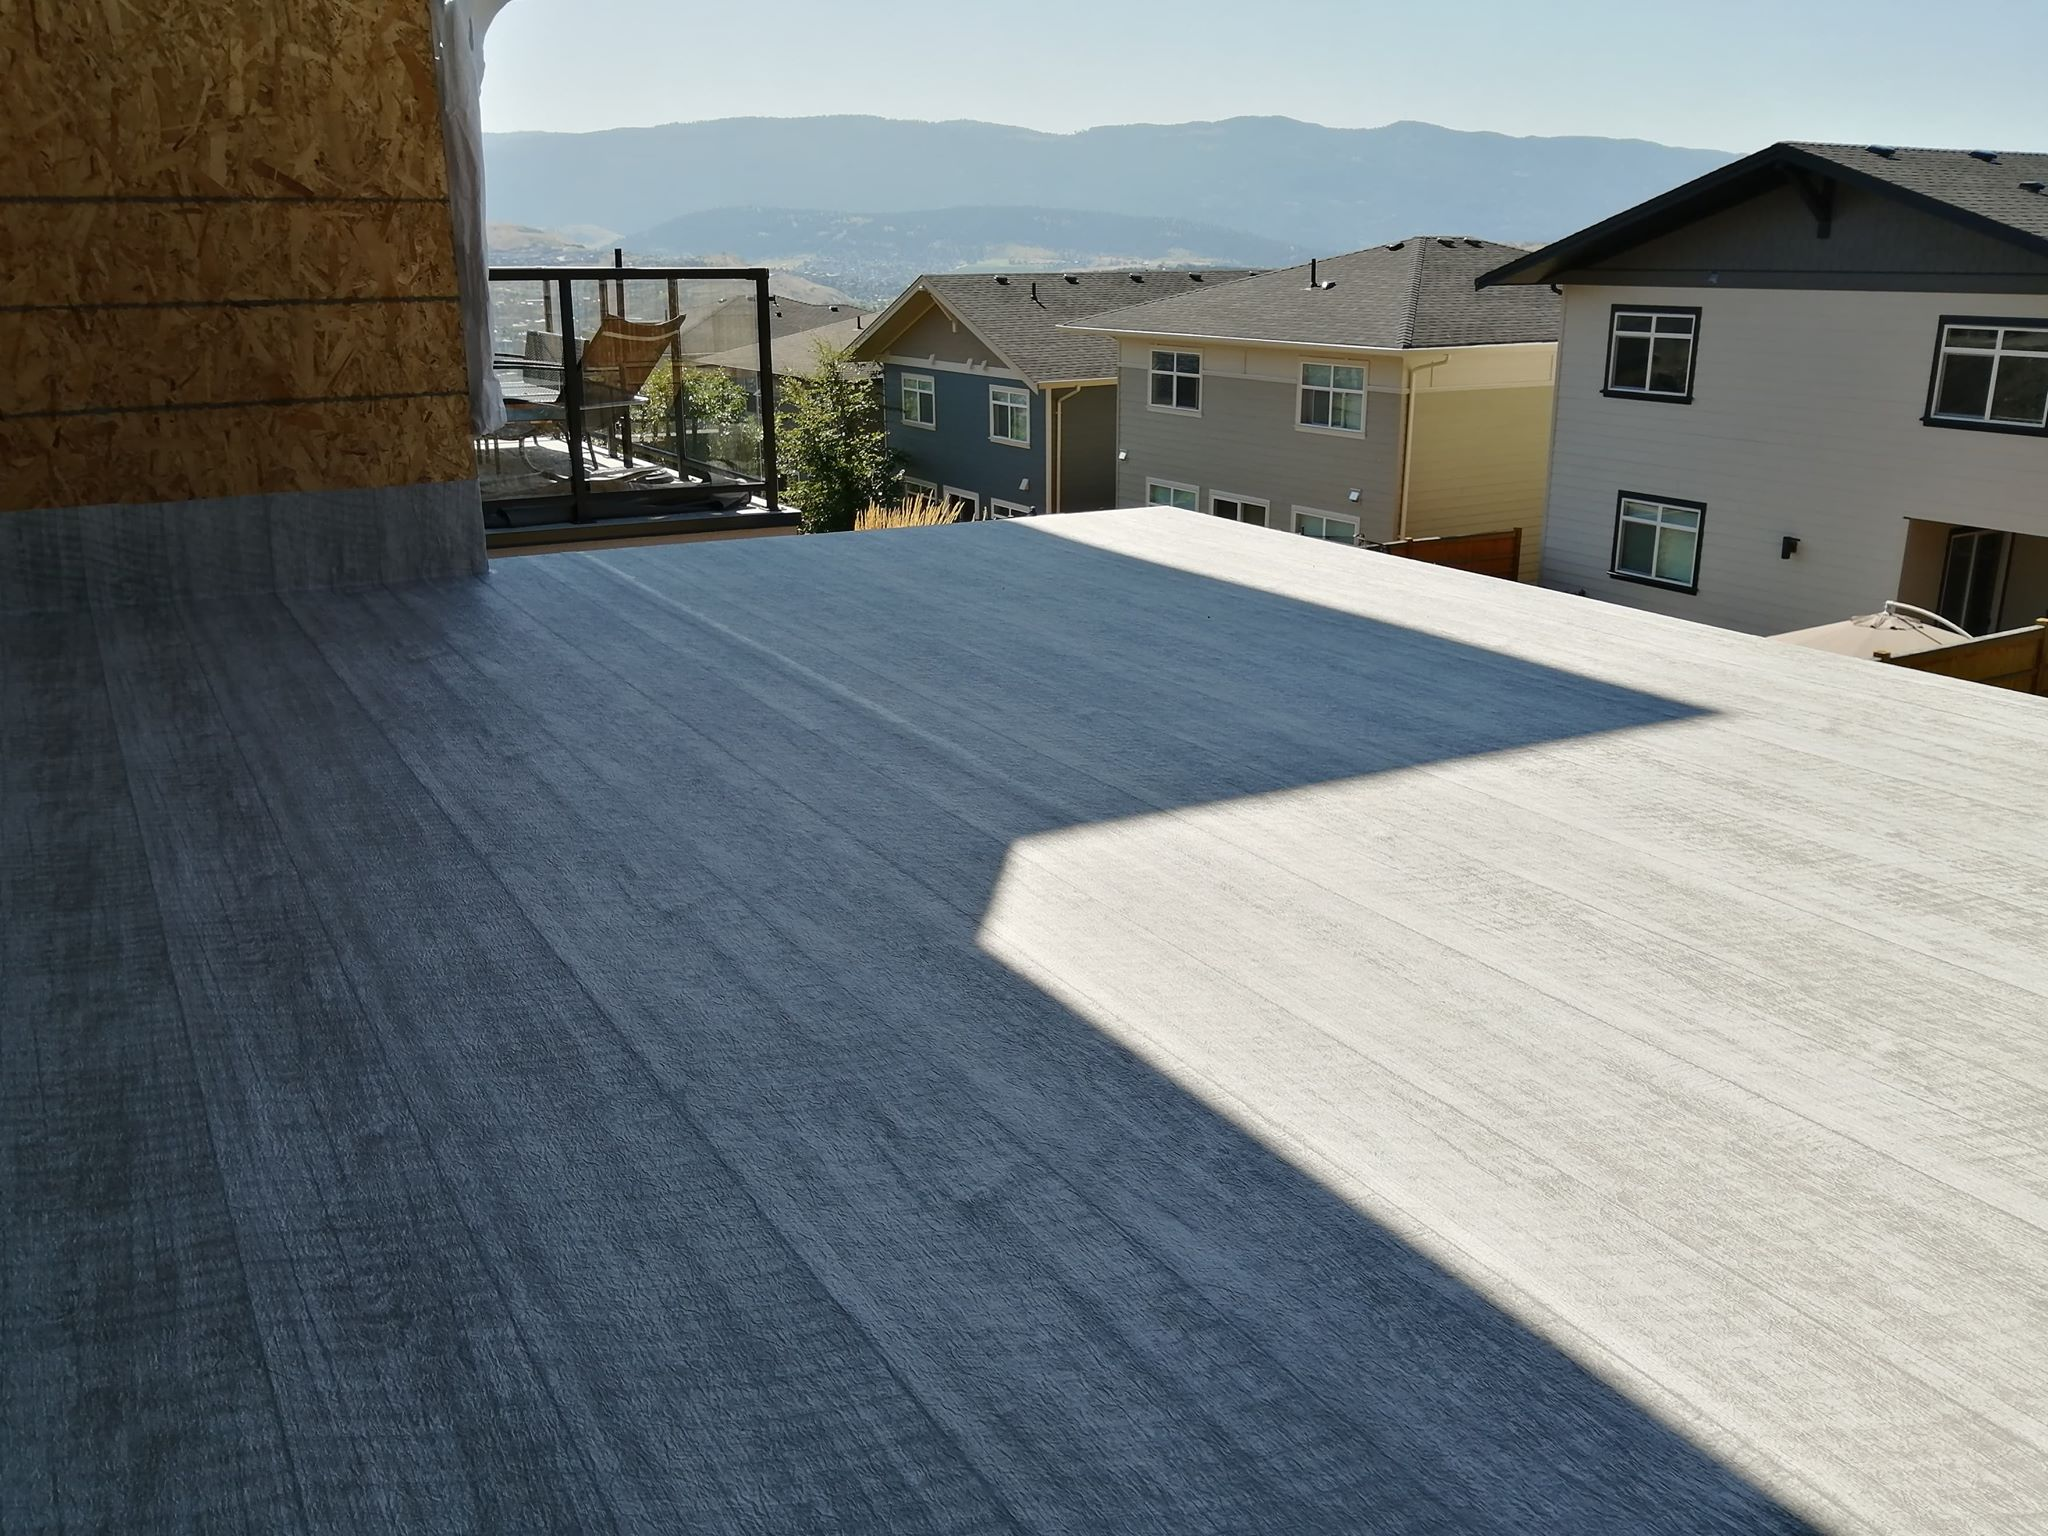 Vinyl Deck Covering Over Wood | Econodek™